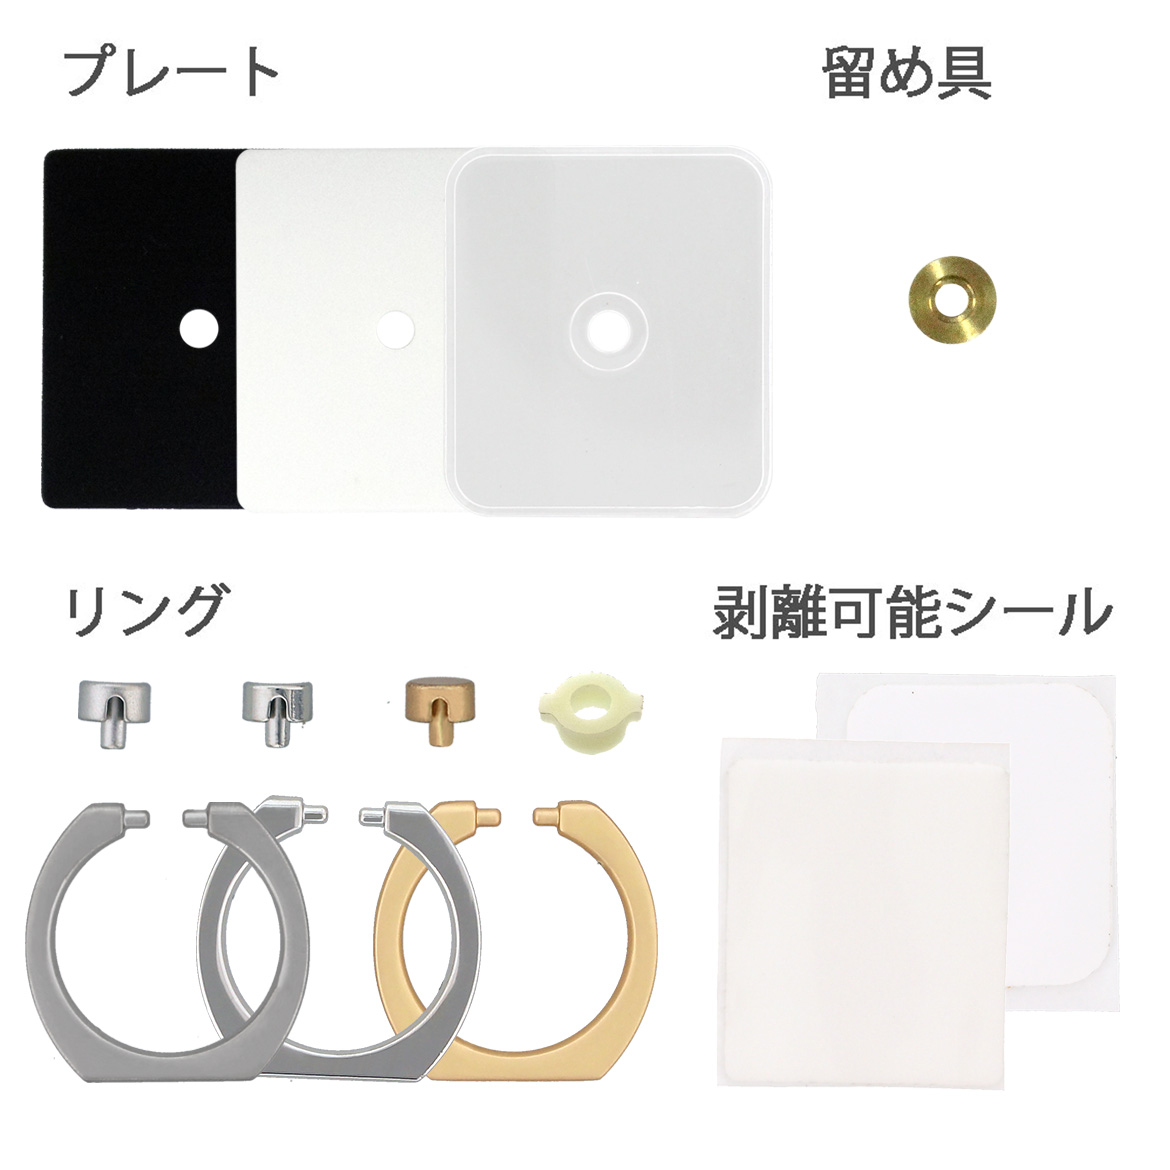 Smartphone stand ring (fall prevention ring)